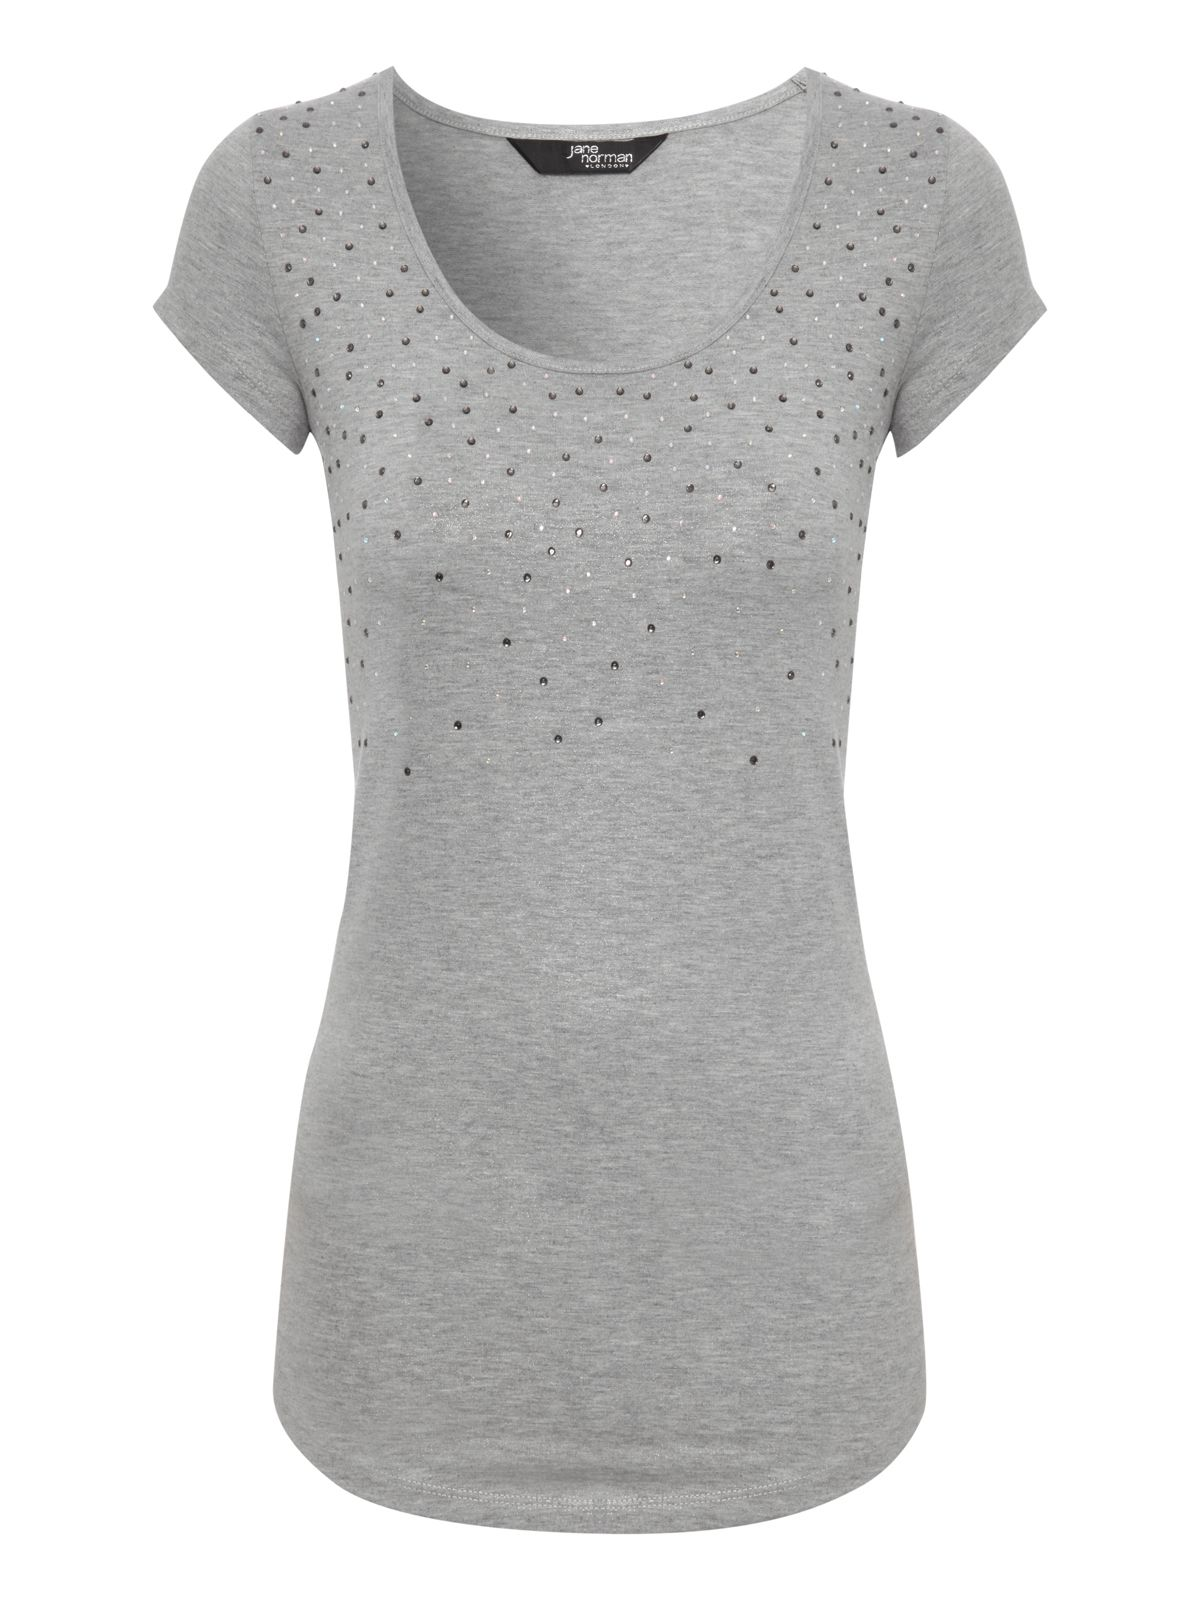 Jane Norman Diamante embellished top, Silver